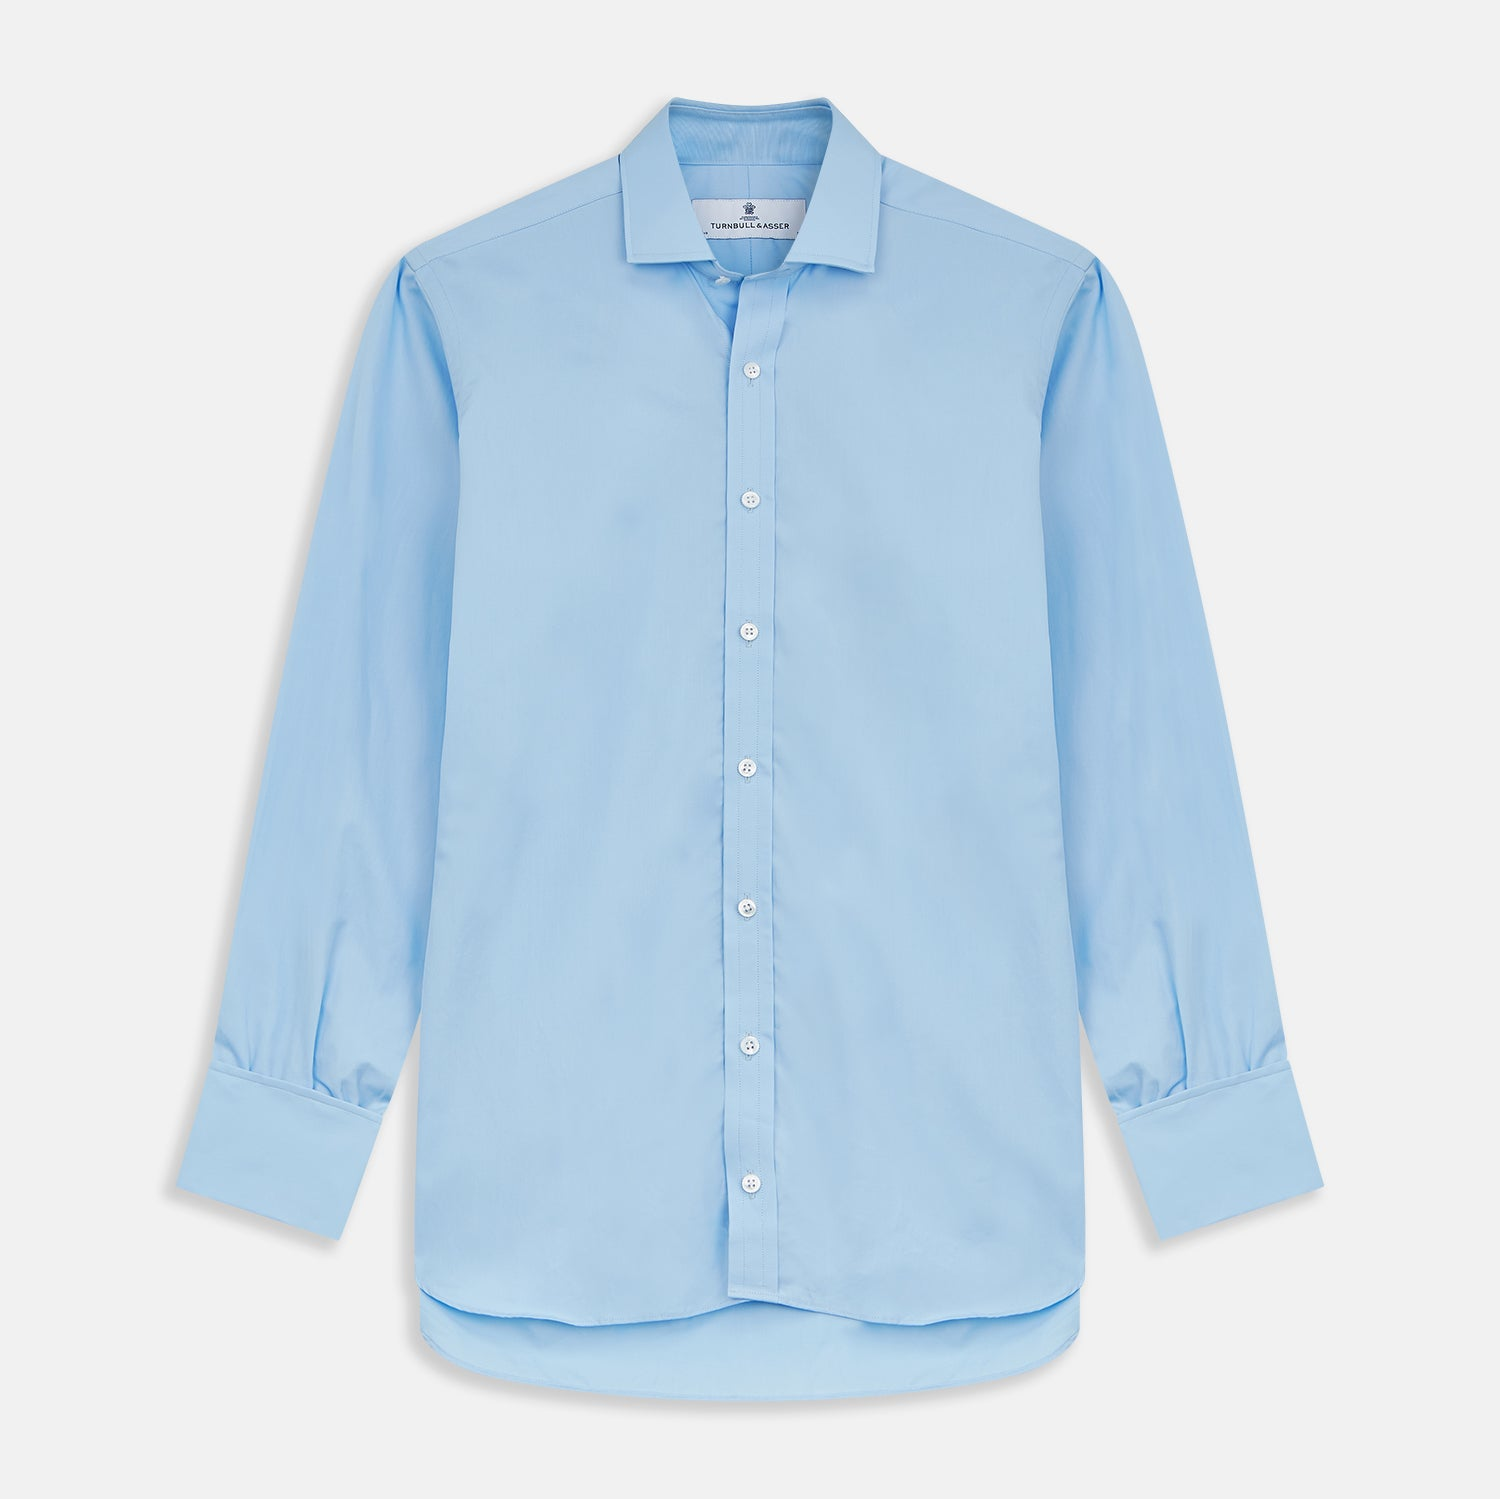 Dr. No Blue Cotton Shirt With Cocktail Cuff As Seen On James Bond